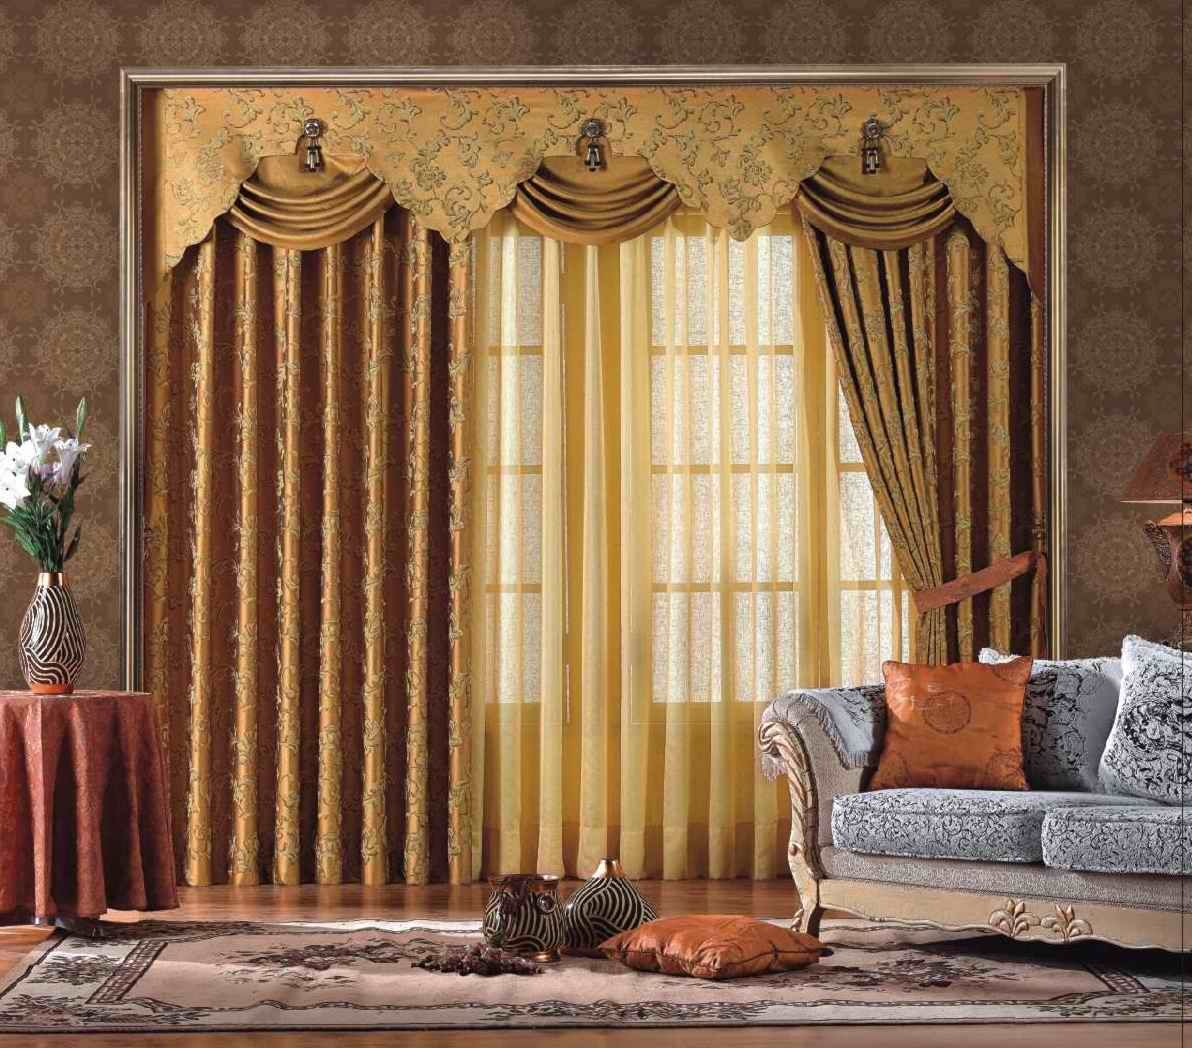 Living Room Curtain Design Gorgeous Architecture  Living Room Curtains With Valance Sutntljr Gorgeous Decorating Inspiration